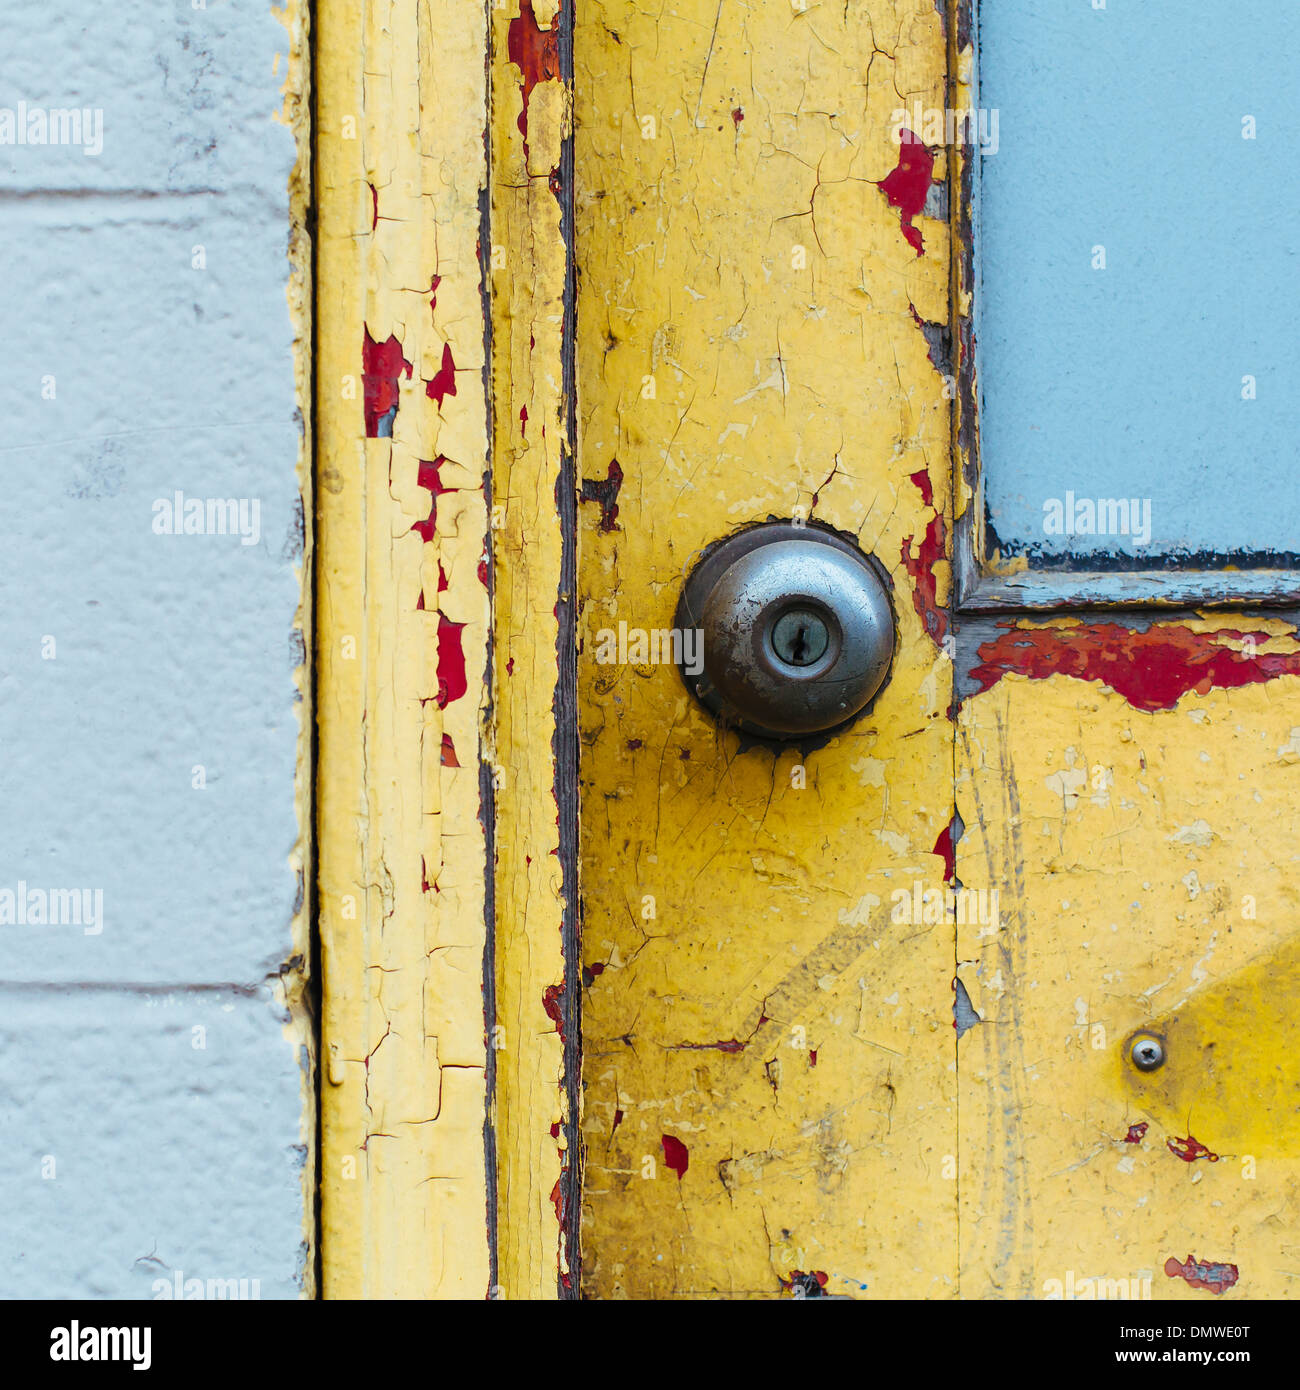 A doorway and  doorbell of a building. Flaked damaged paint. - Stock Image